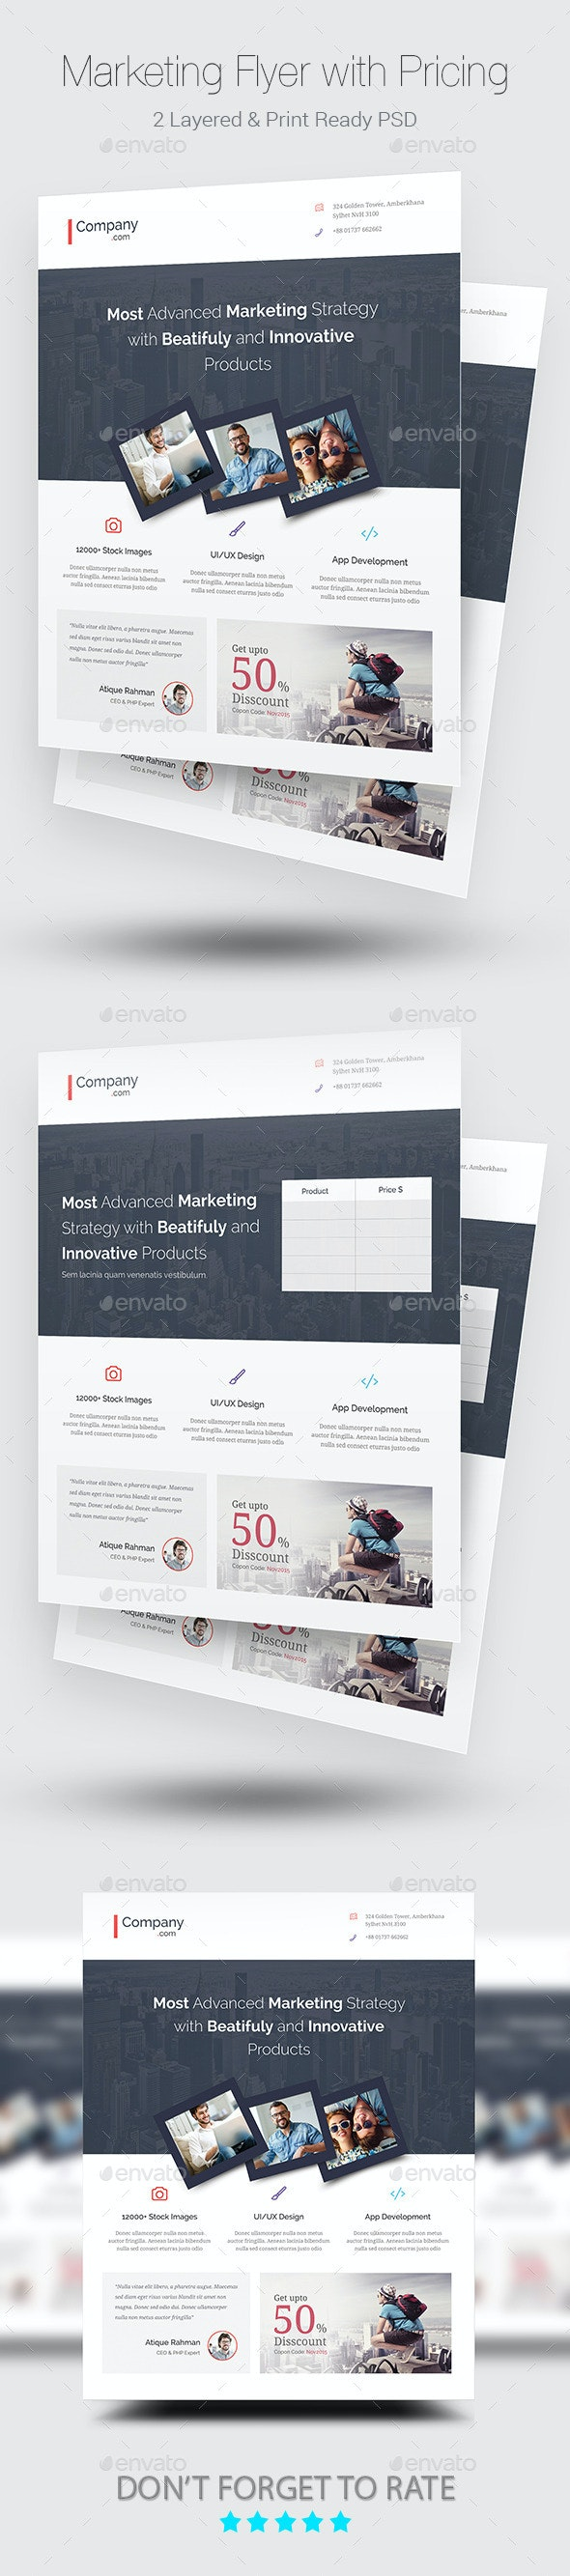 Marketing Flyer with Pricing Table - Corporate Flyers